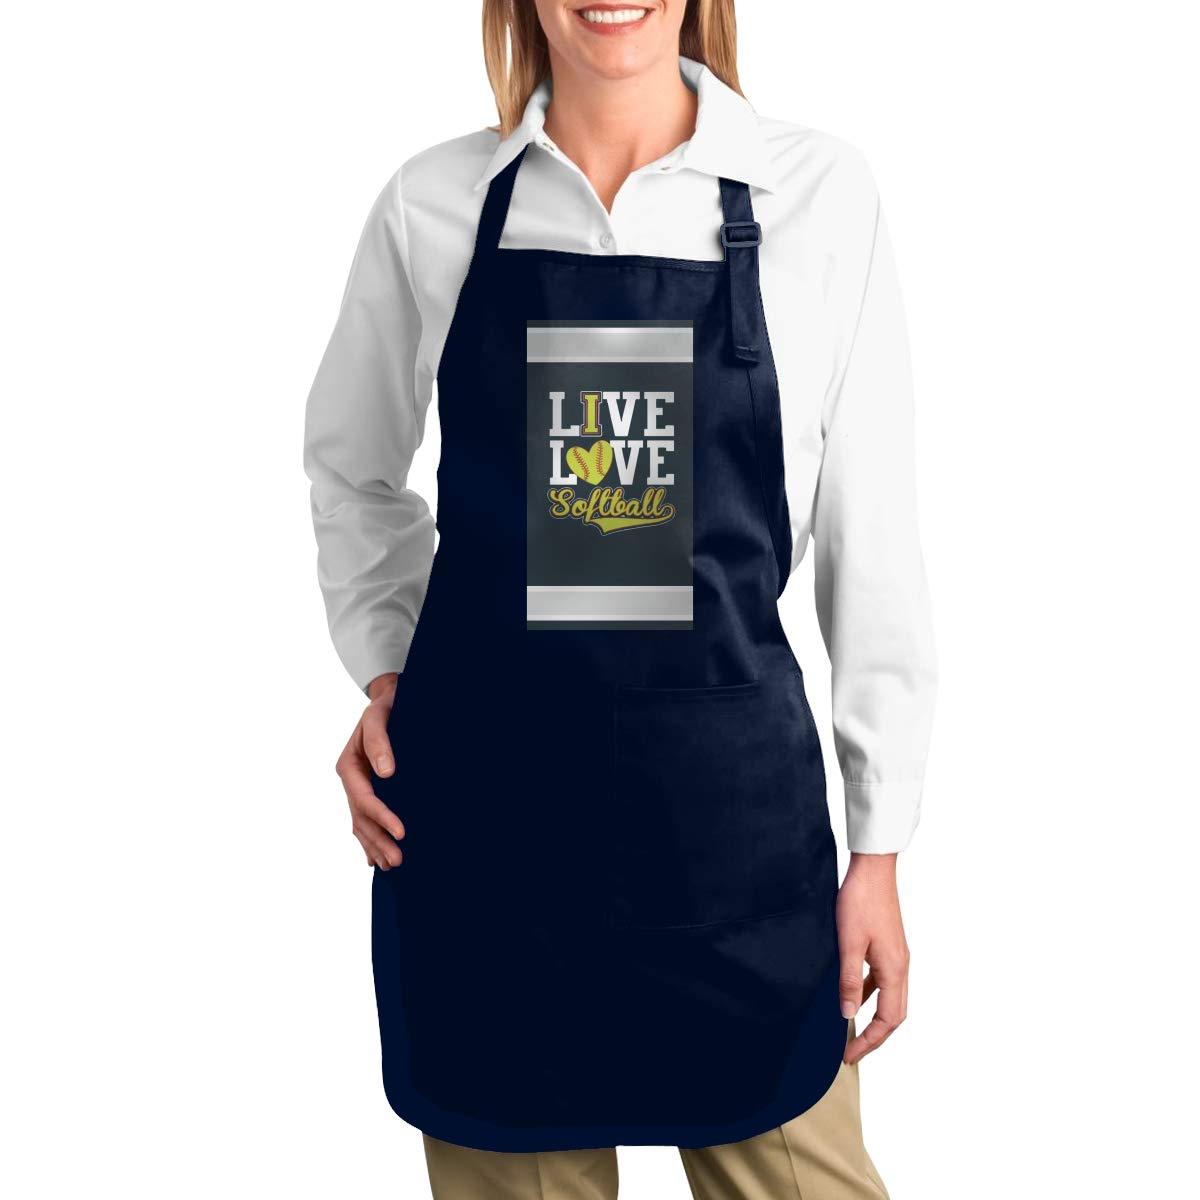 ZANGLUOJI Live Love - Softball Heavy Duty Canvas Work Apron,Tool Pockets, Back Straps Adjustable